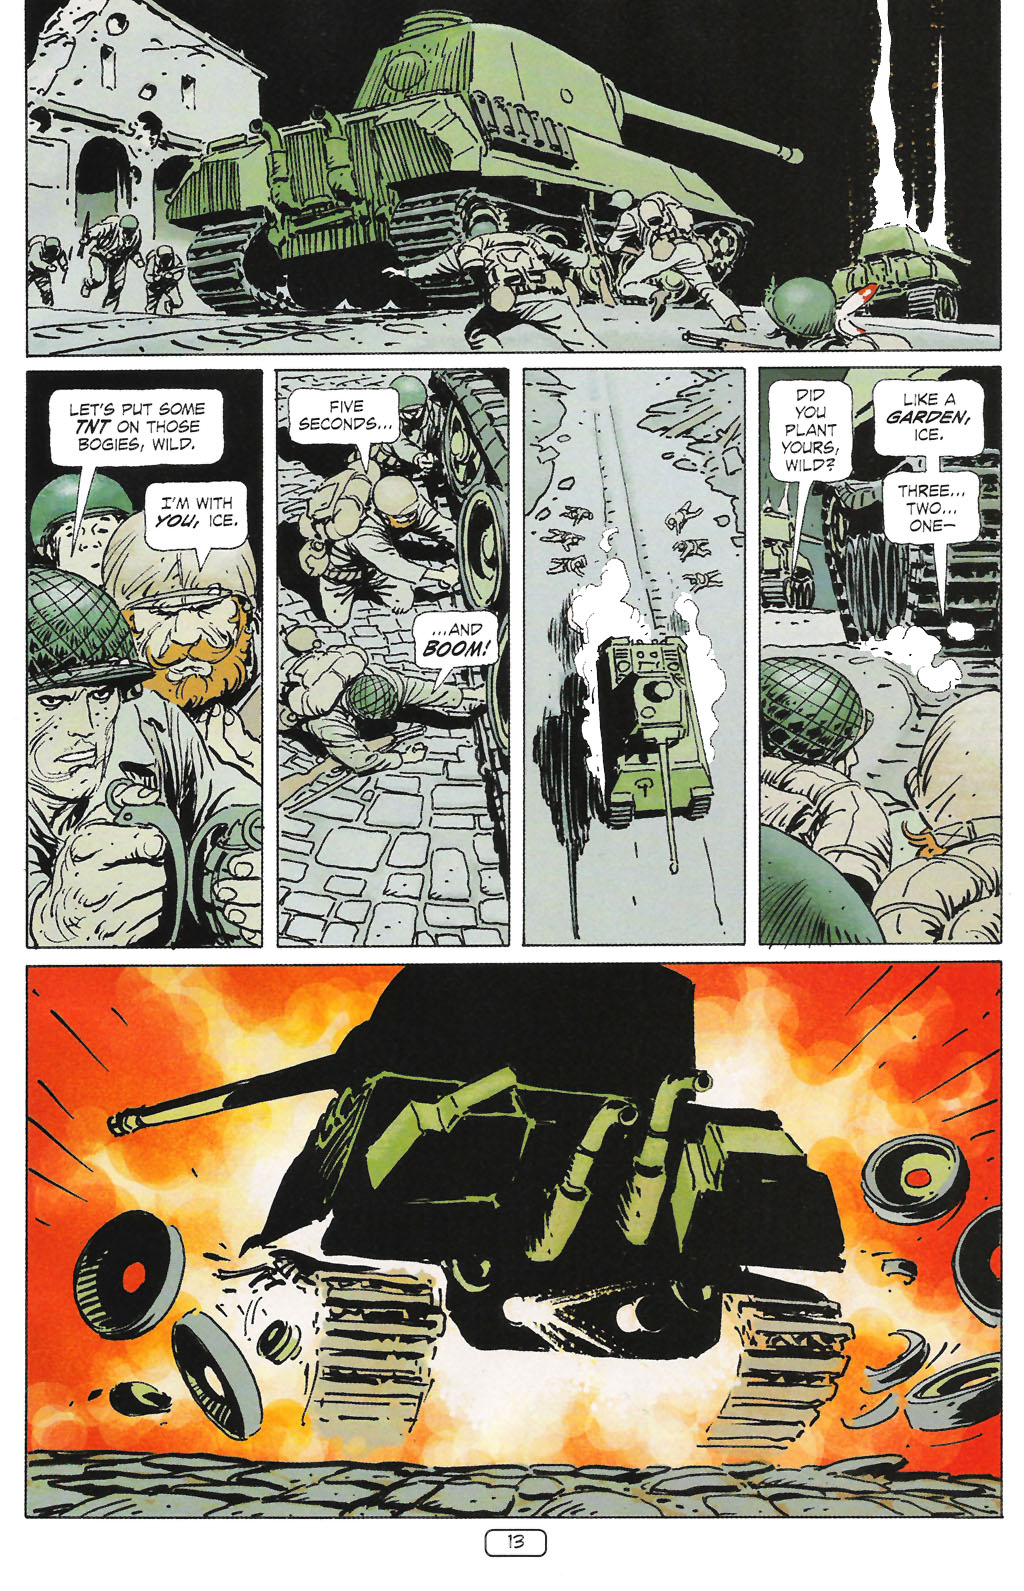 Read online Sgt. Rock: The Prophecy comic -  Issue #1 - 15